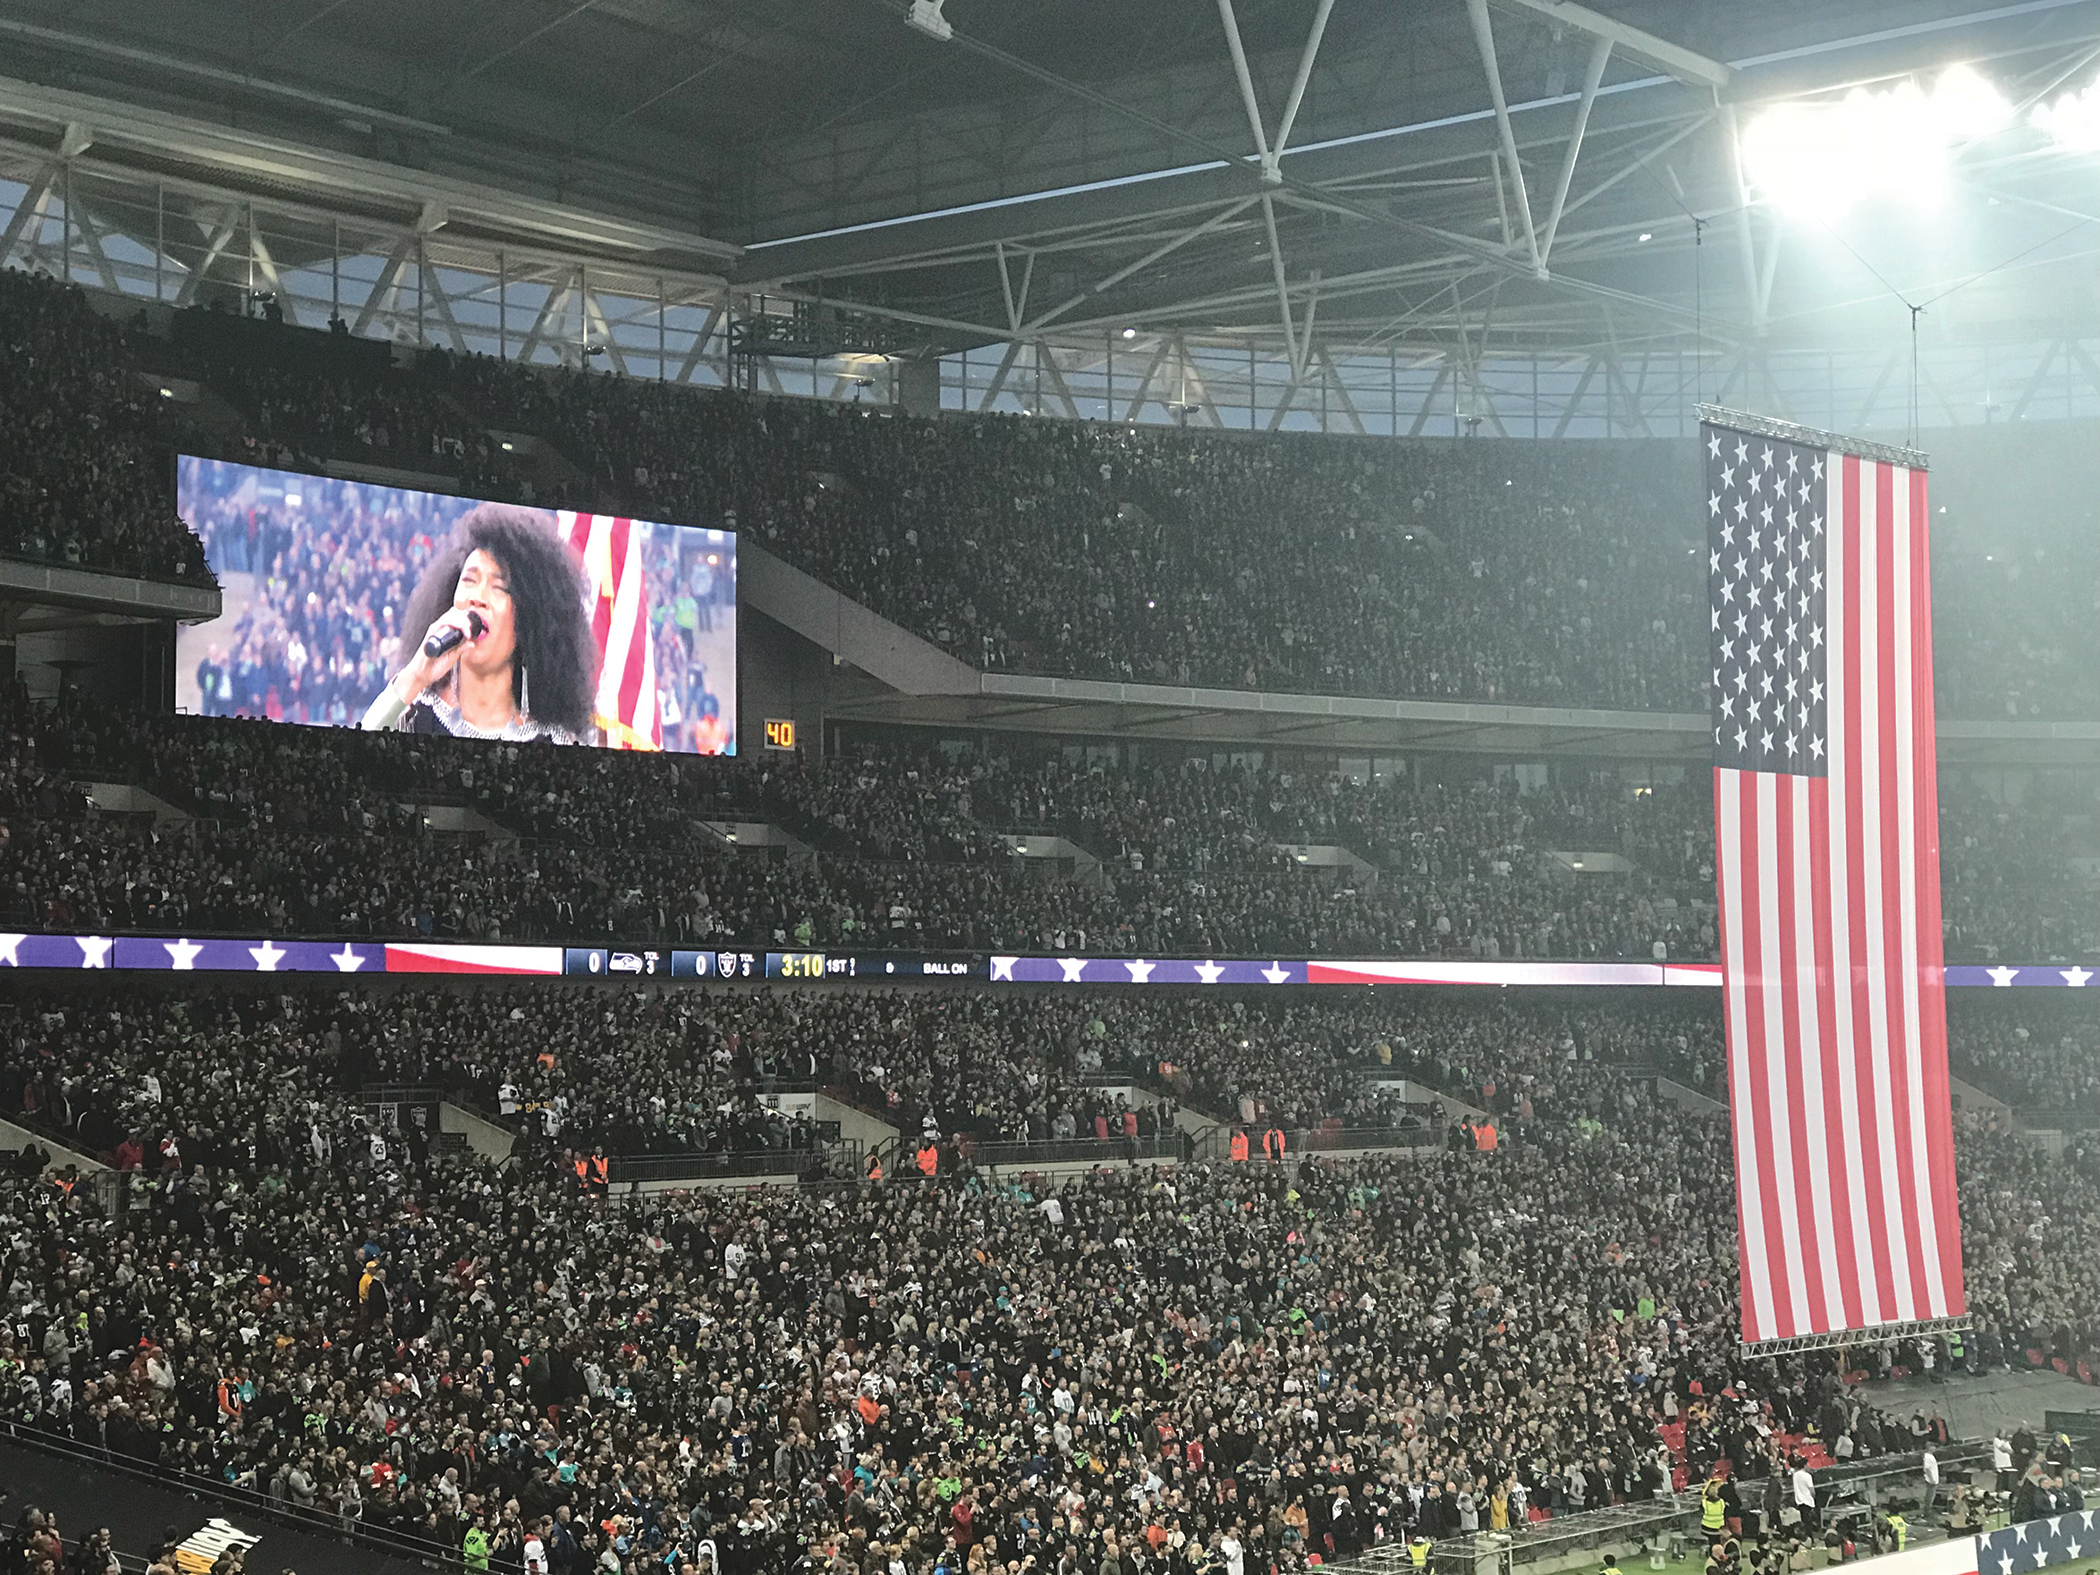 Judith Hill sings the USA National Anthem before a packed house at Wembly Stadium, prior to the Seattle Seahawks vs Oakland Raiders game. (Whatsgoodinsports.com/LA News Observer photo)